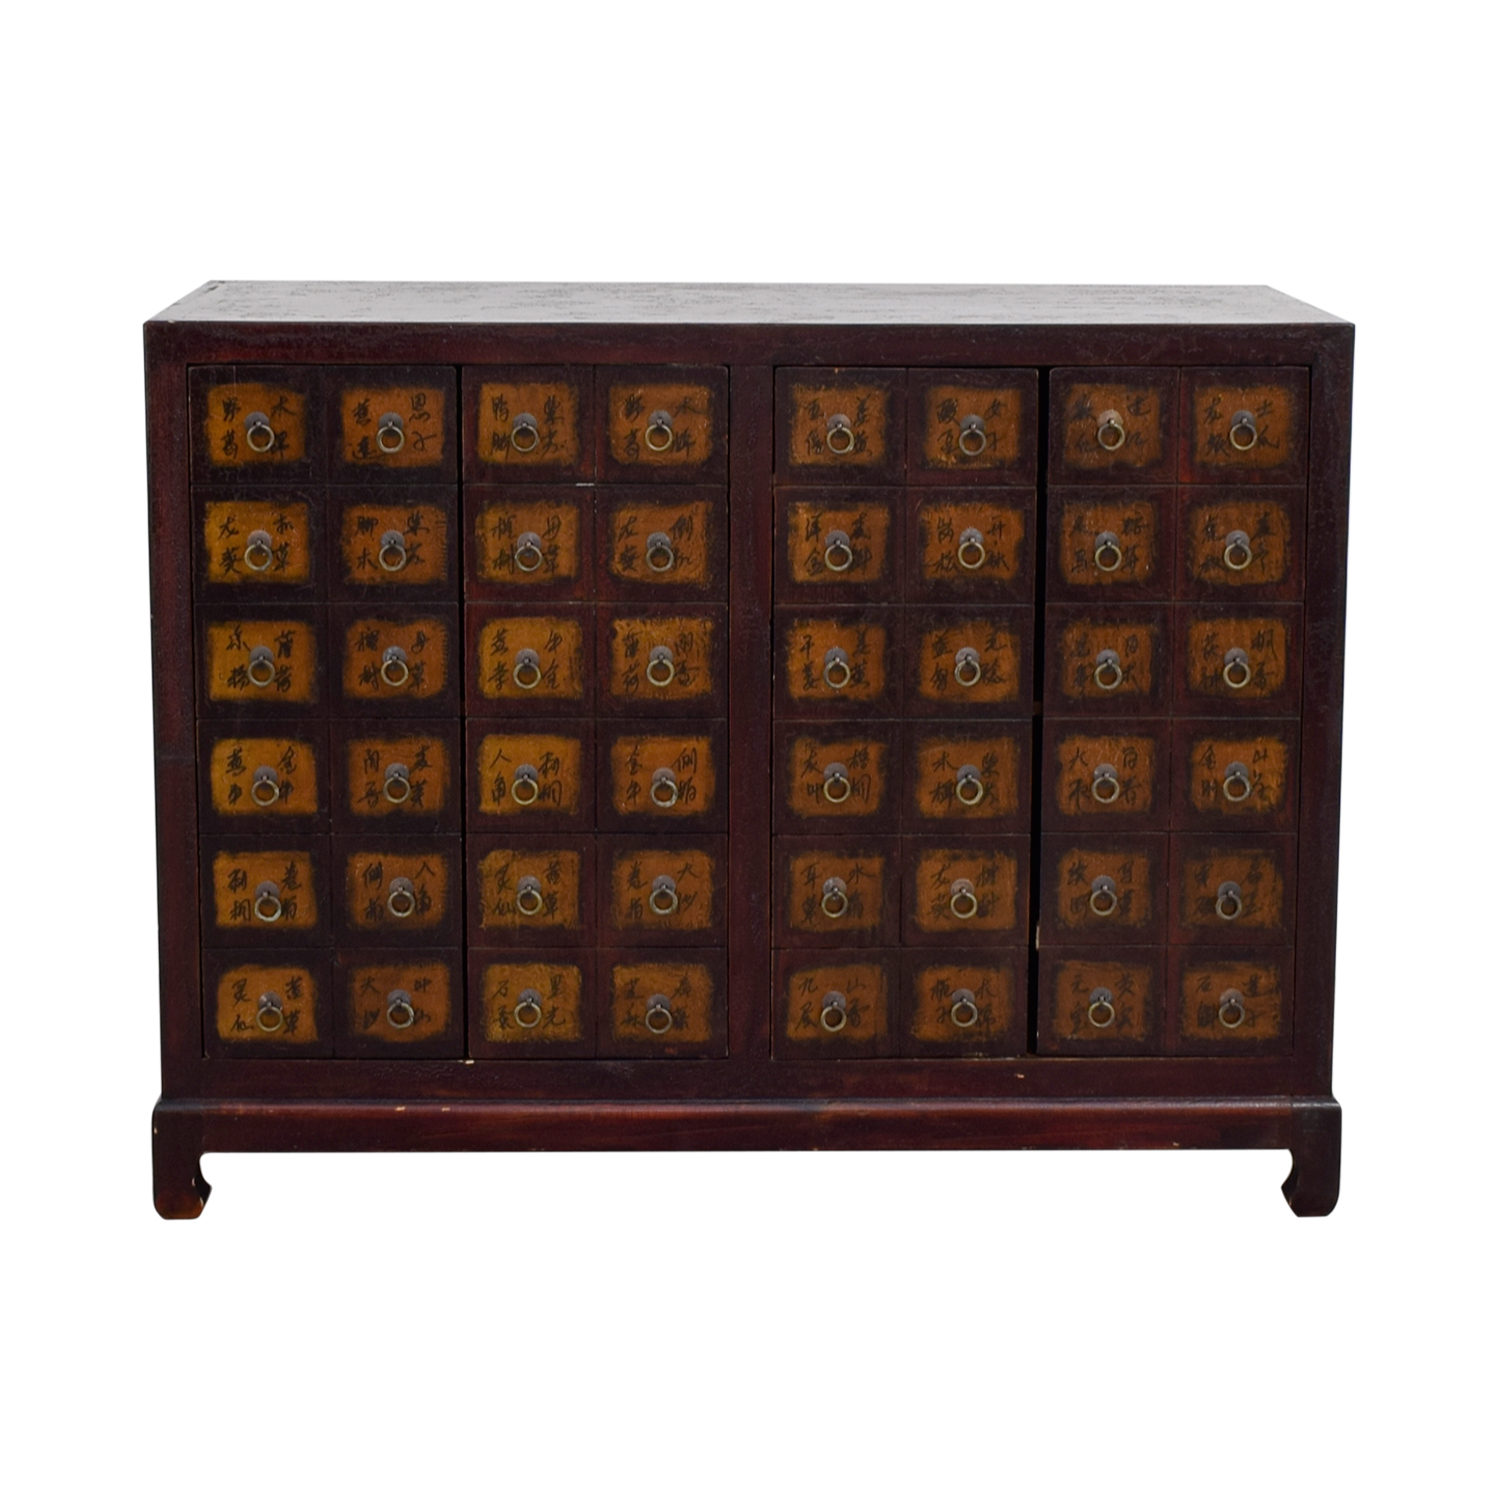 69 off asian barn asian barn antique chinese cabinet for Antique asian cabinet